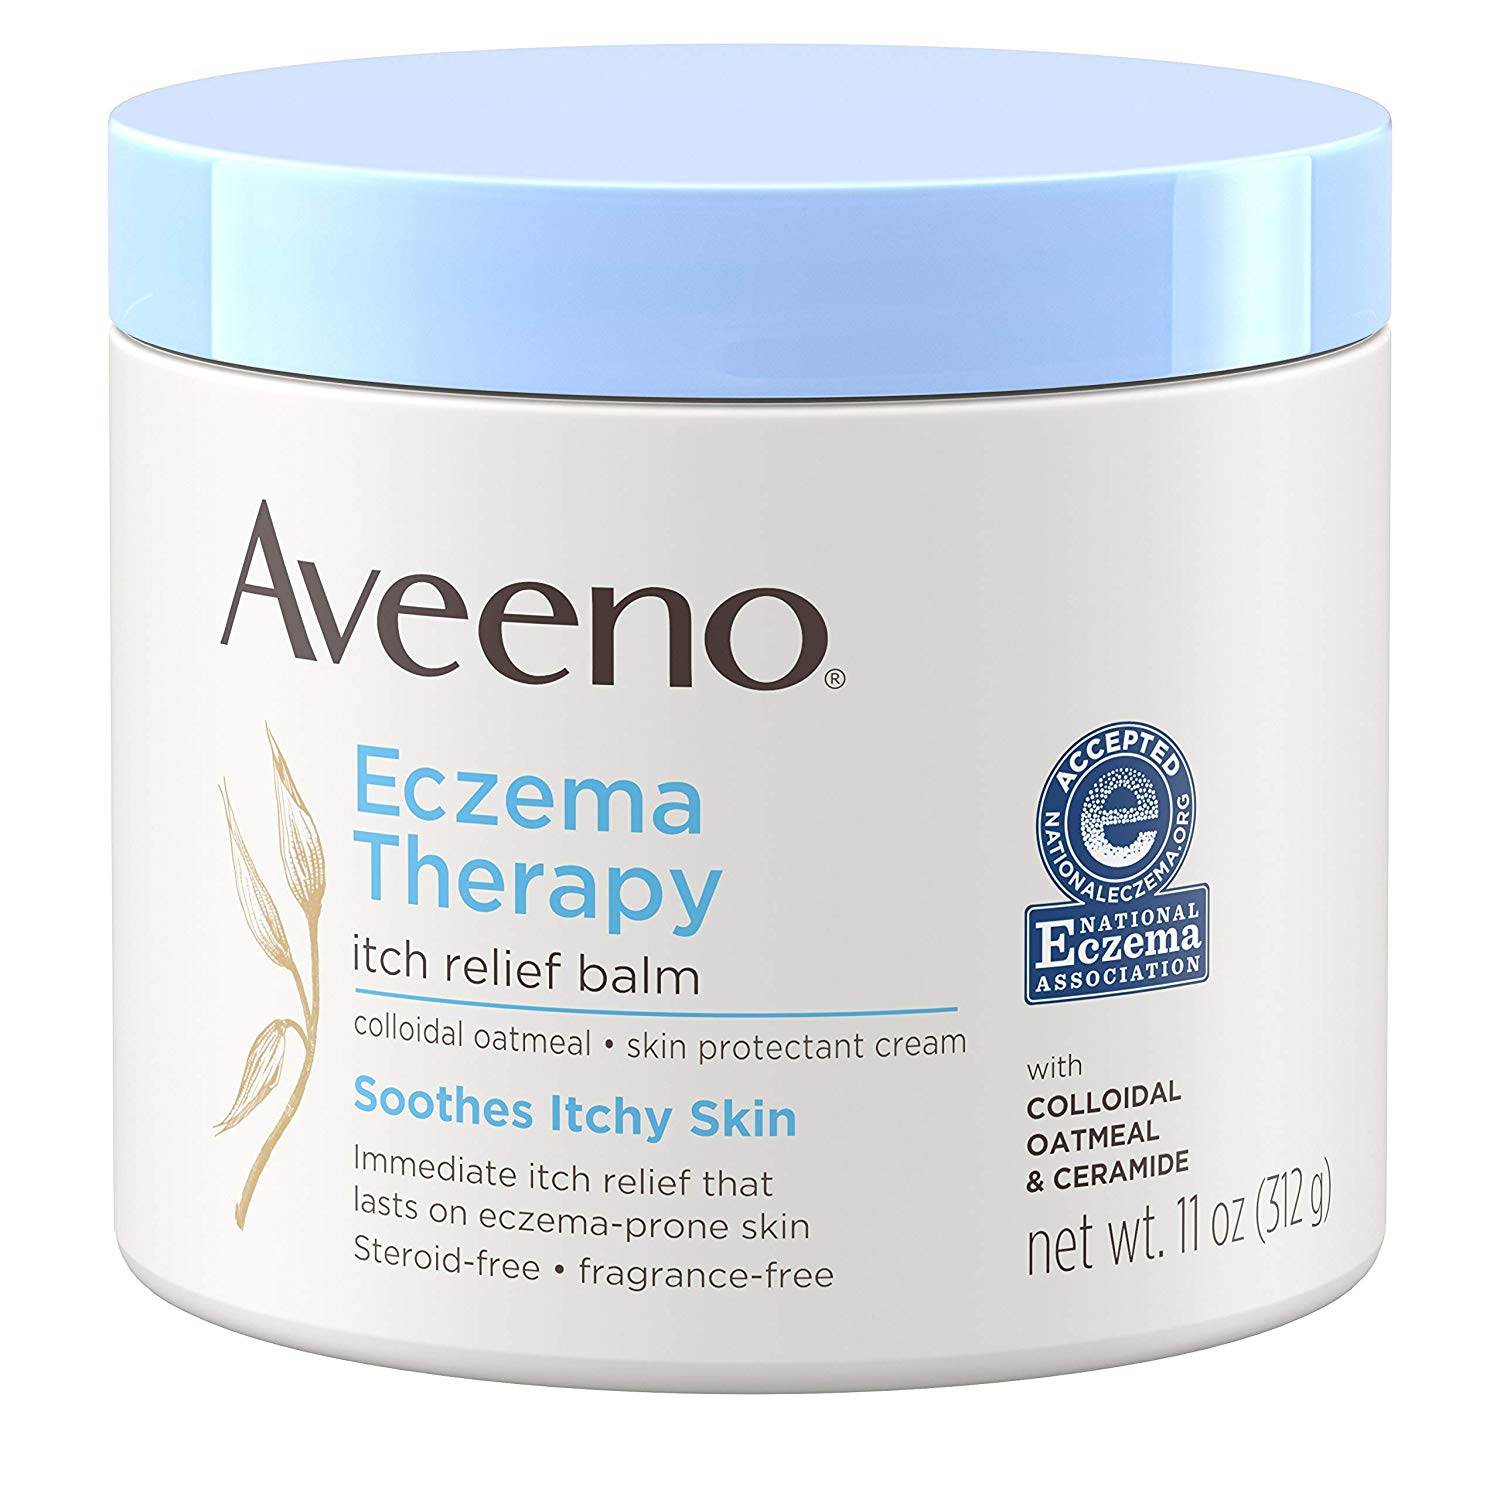 Aveeno Eczema Therapy Itch Relief Balm with Colloidal Oatmeal